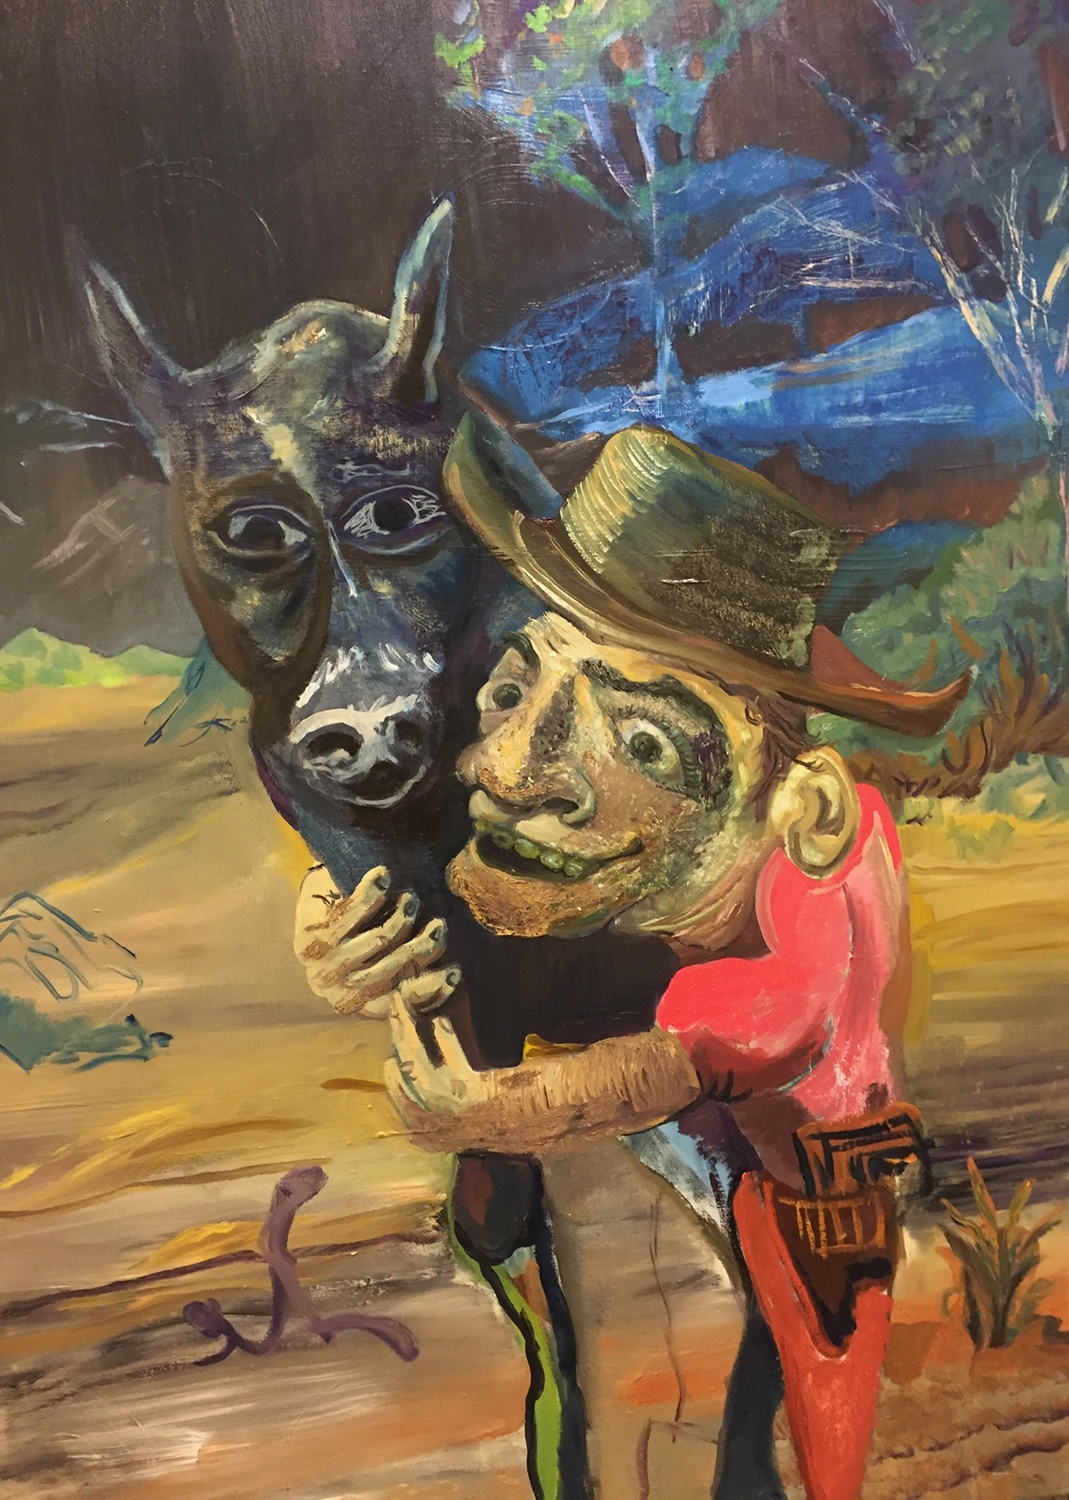 Crooked Cowboy, 2017. Oil on canvas, 48x72 inches.